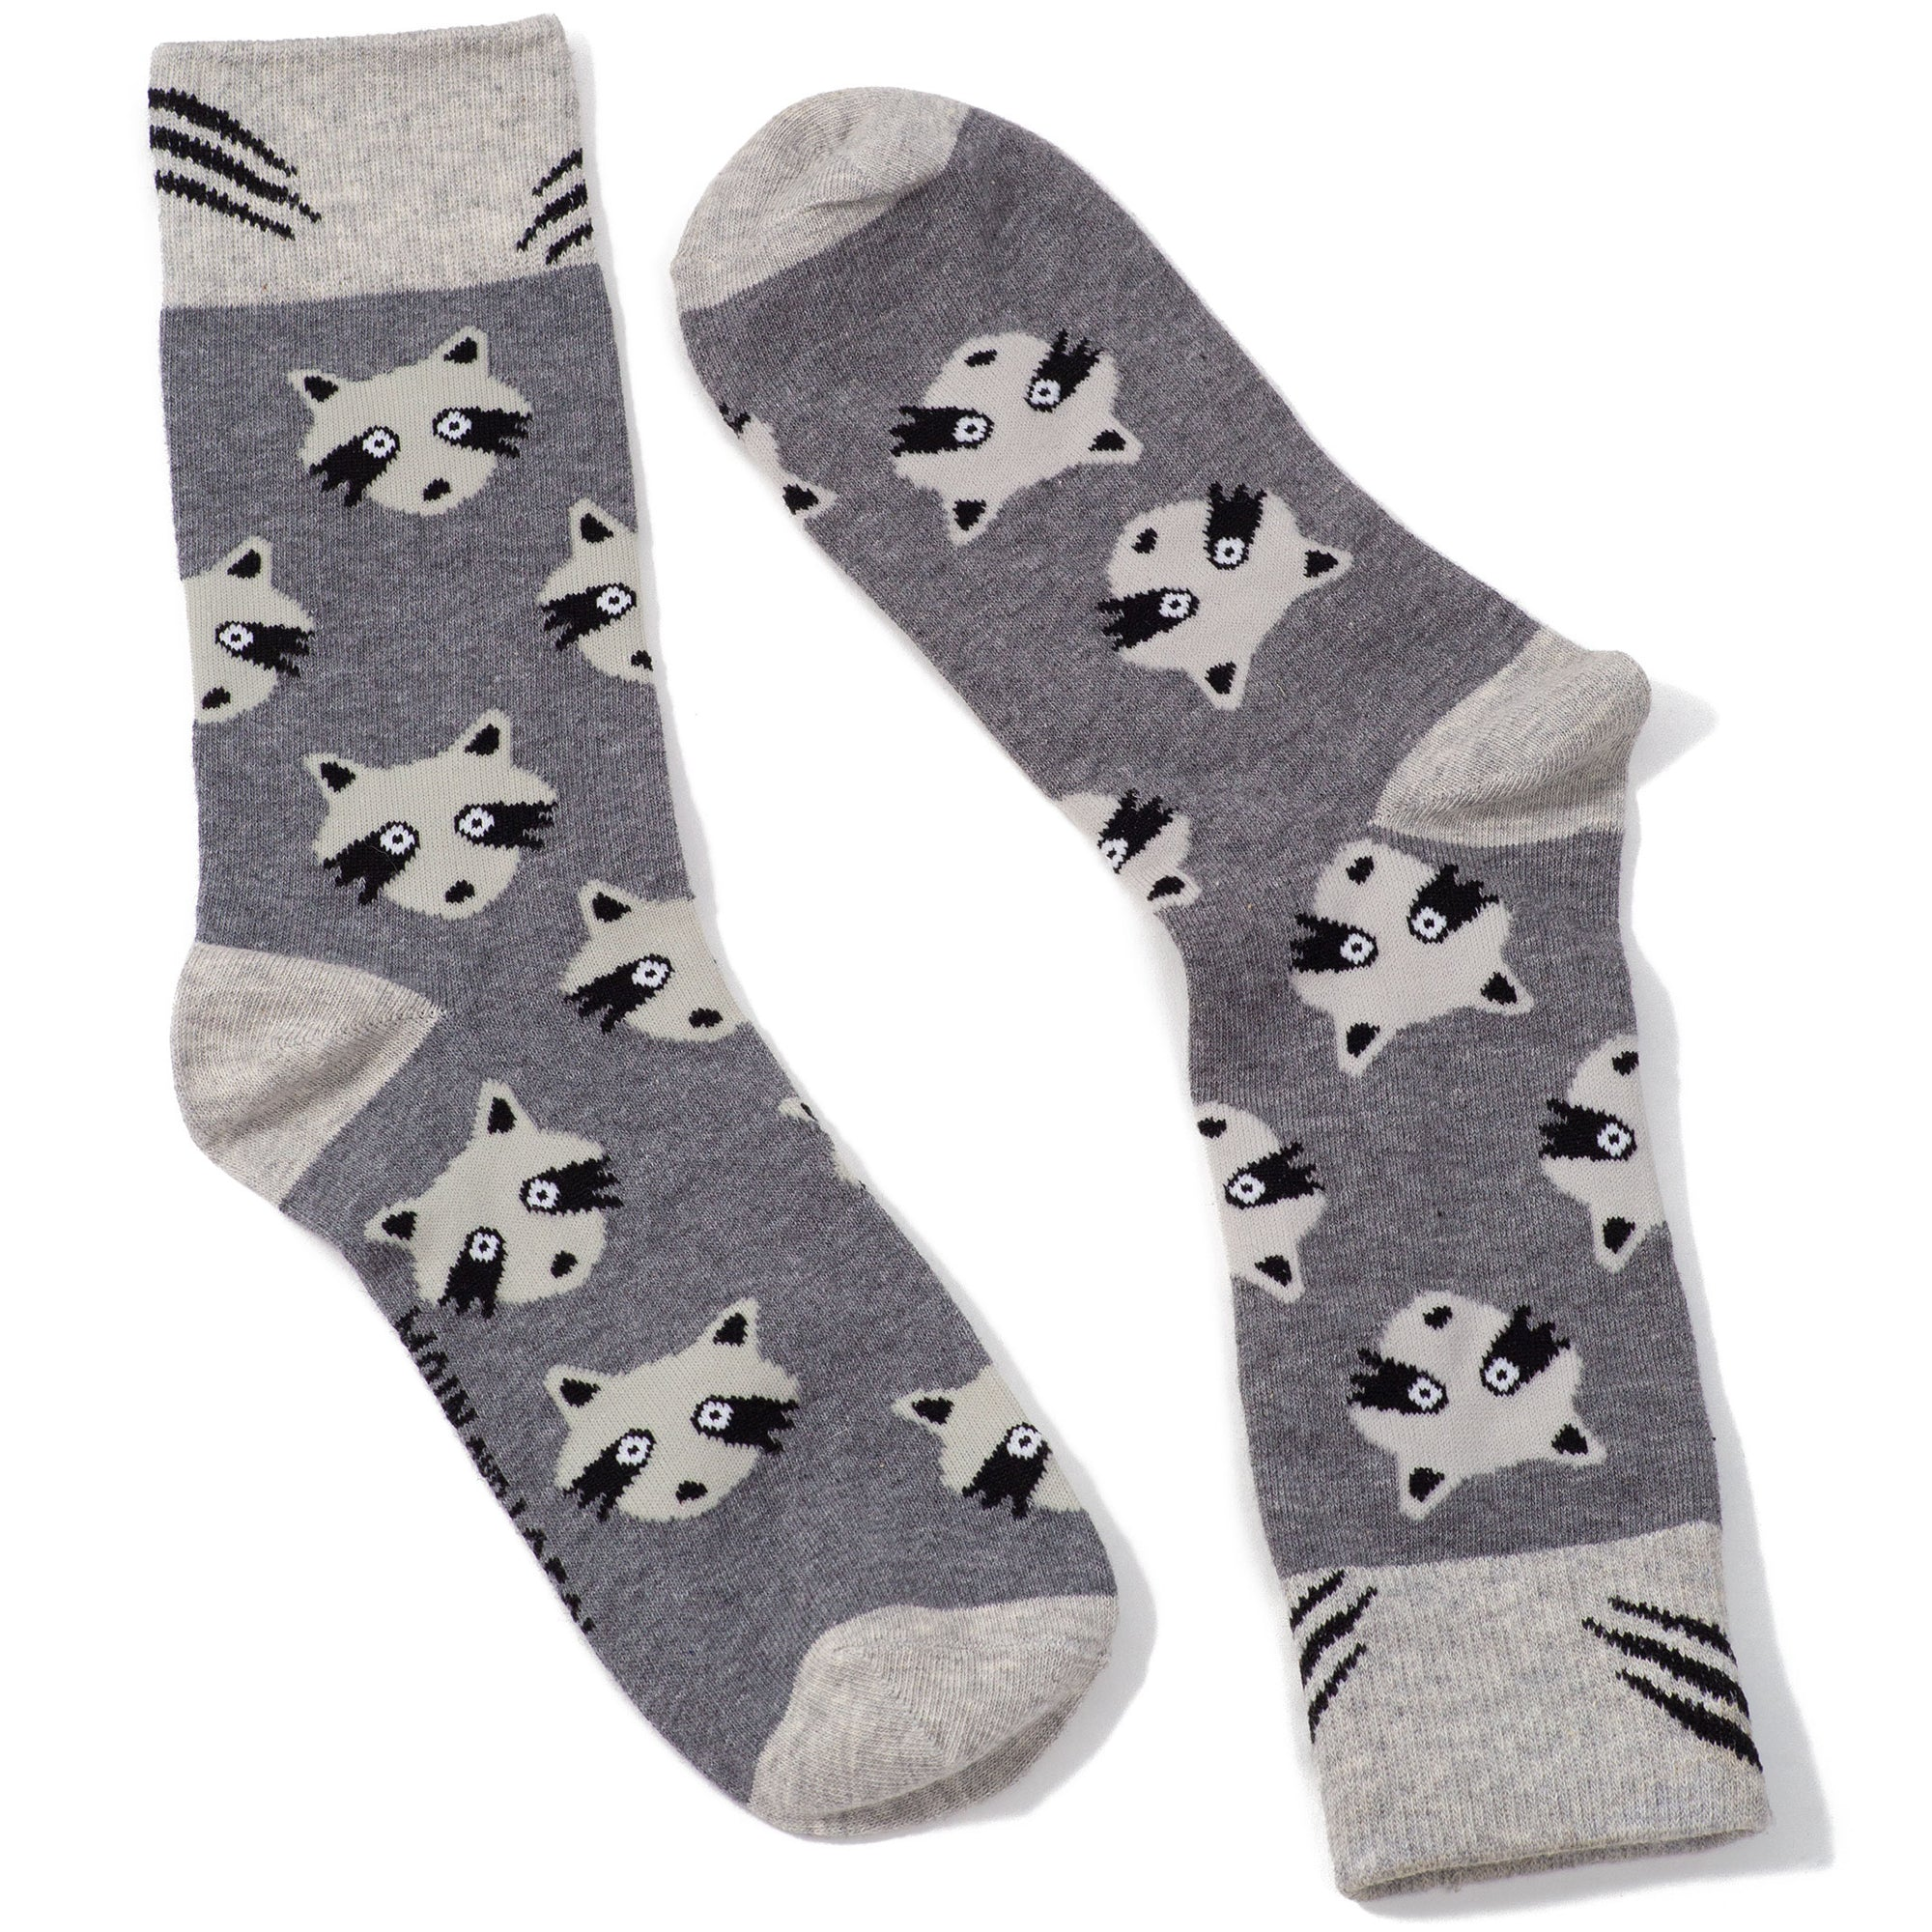 Toronto Raccoons Socks - Main and Local